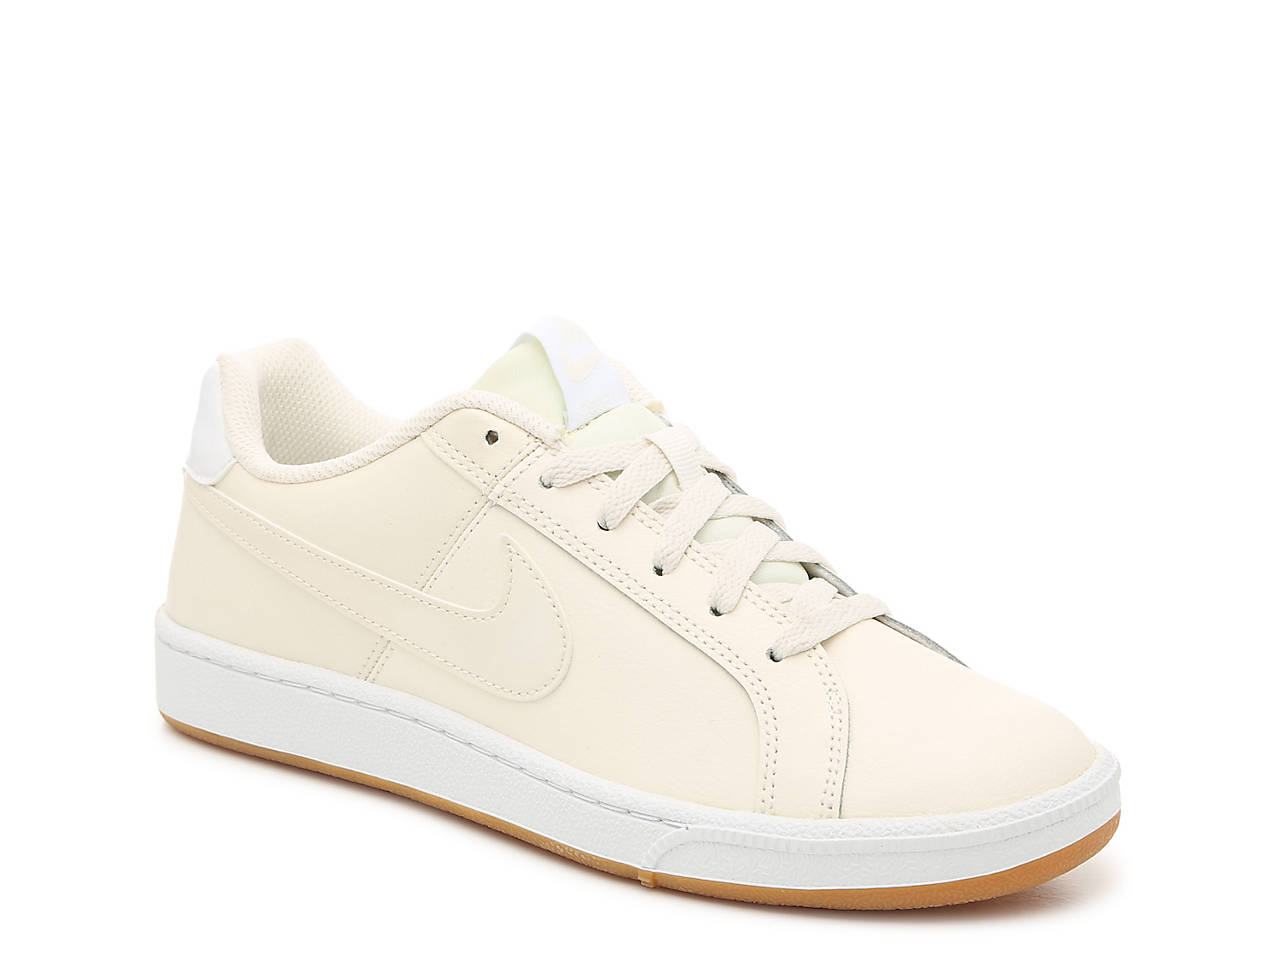 size 40 870c8 0c1a2 Nike Court Royale Sneaker - Women s Women s Shoes   DSW